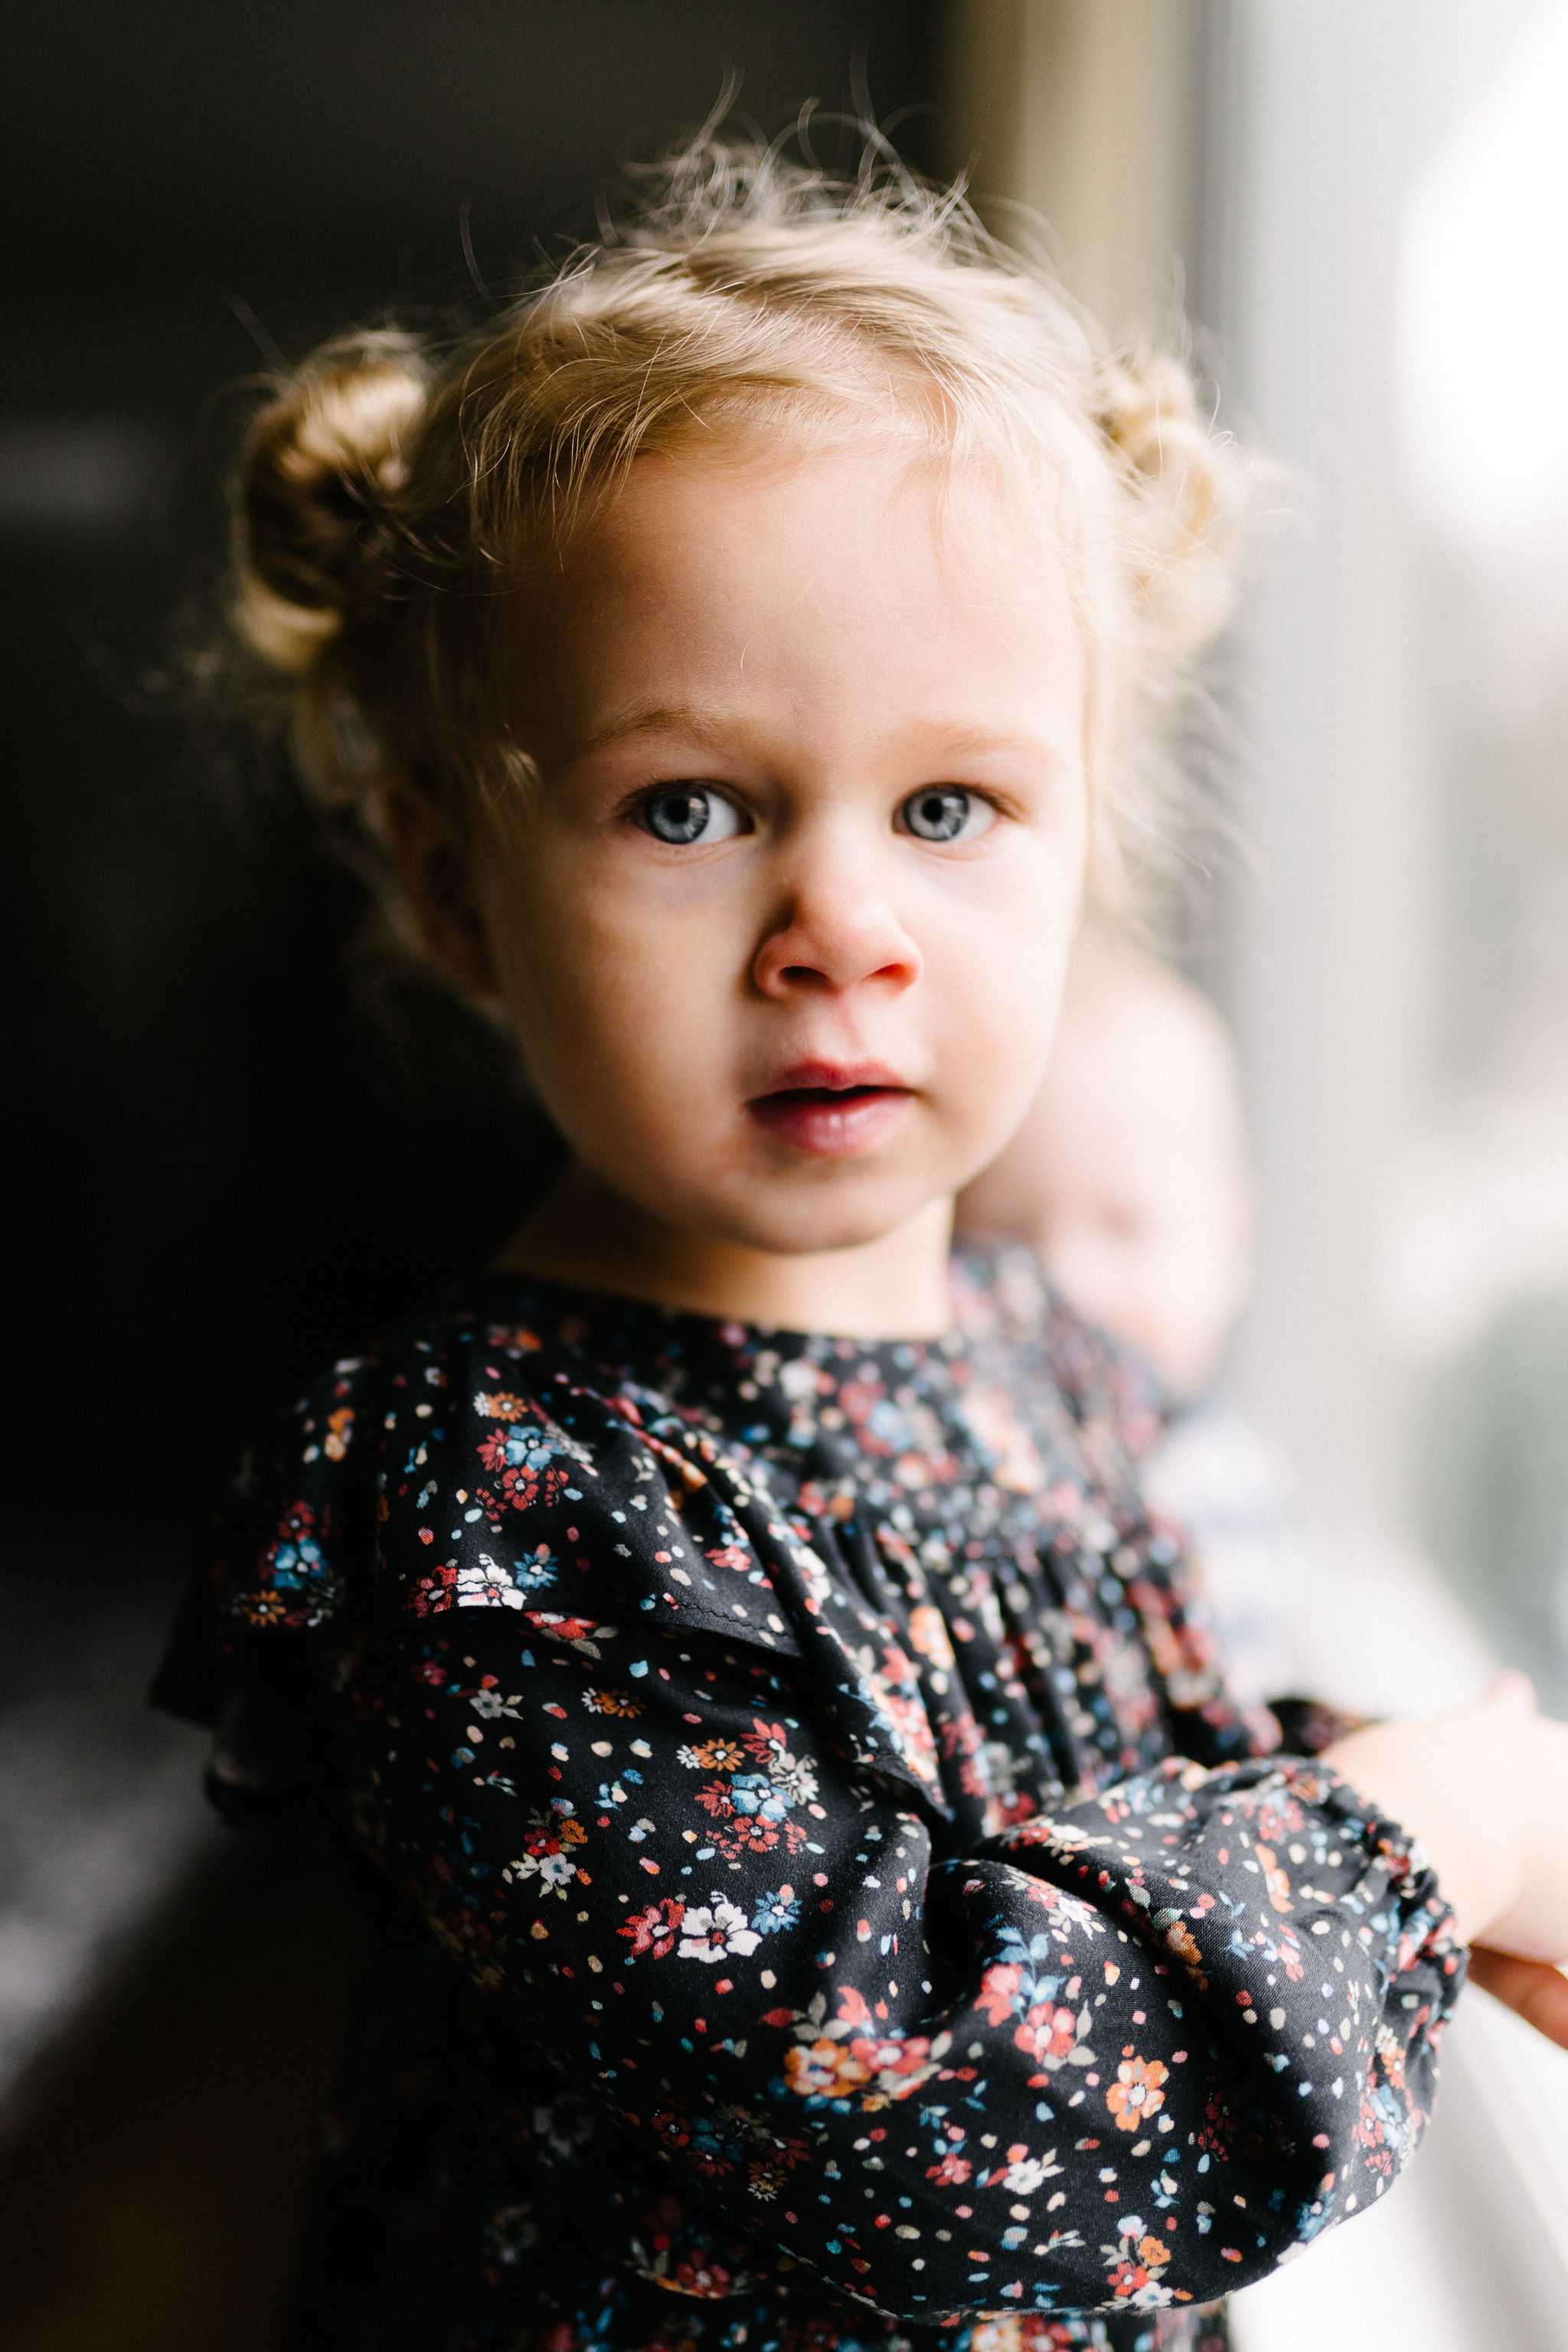 rempel-photography-oak-park-chicago-family-session-in-home-goode-14.jpg